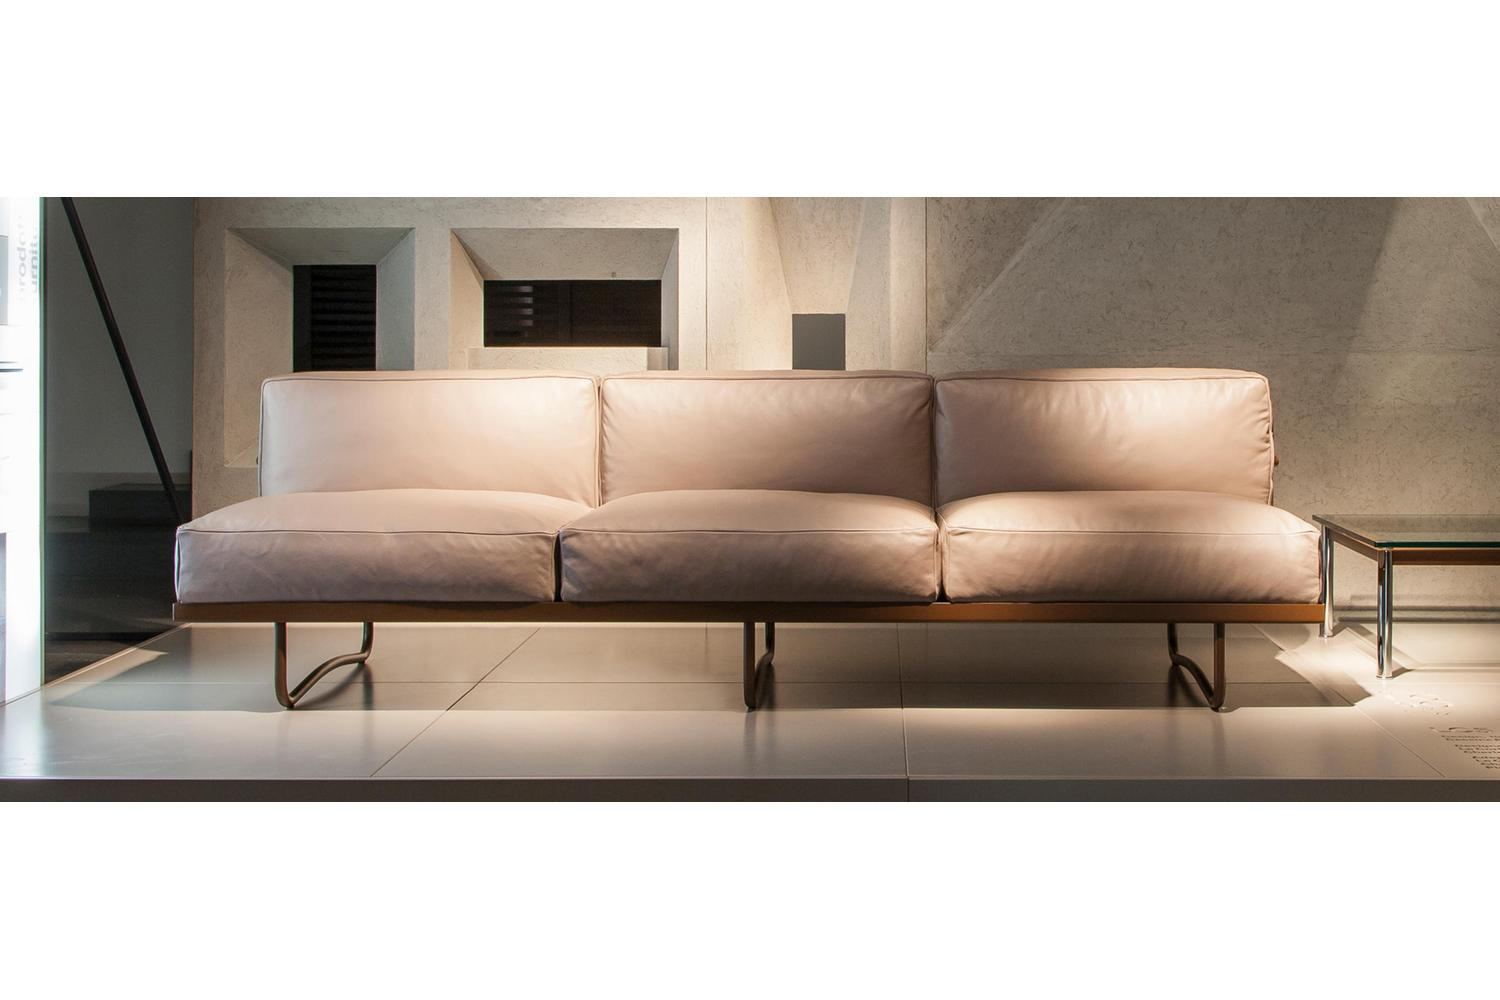 lc5 sofa price most comfortable leather sleeper by le corbusier pierre jeanneret charlotte perriand for share